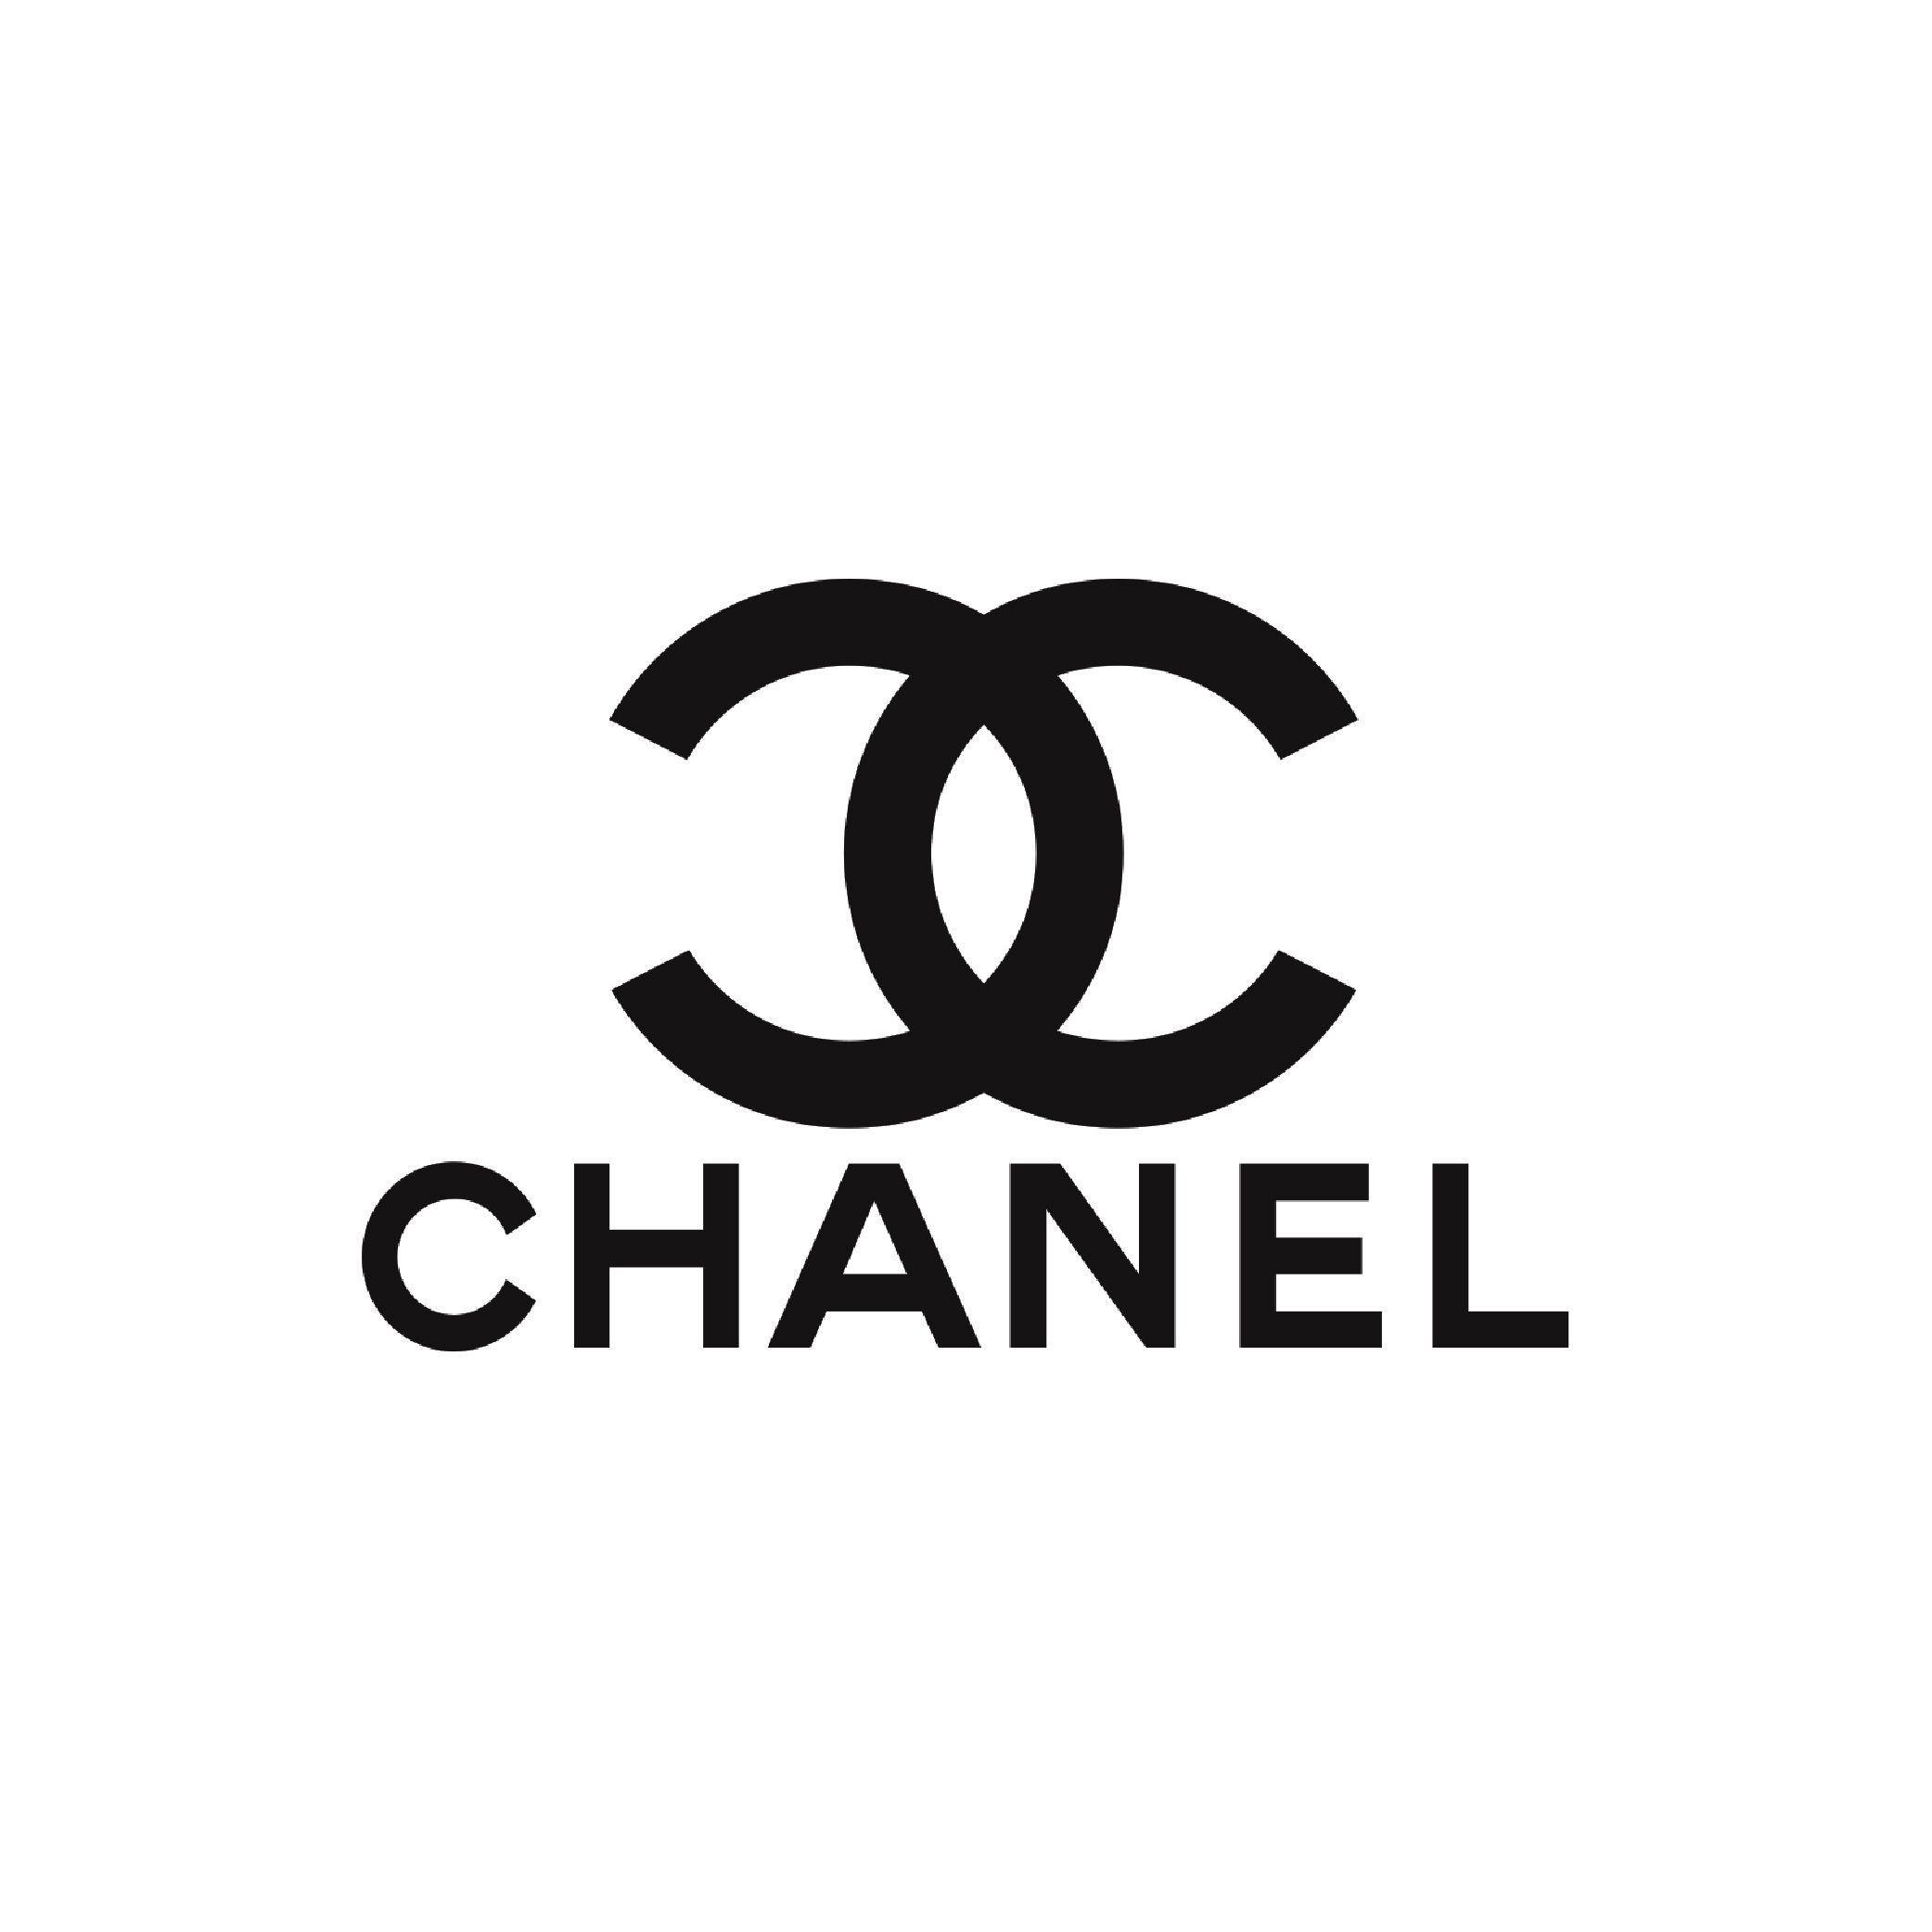 Chanel Combomark Chanel Wallpapers Chanel Wall Art Chanel Print